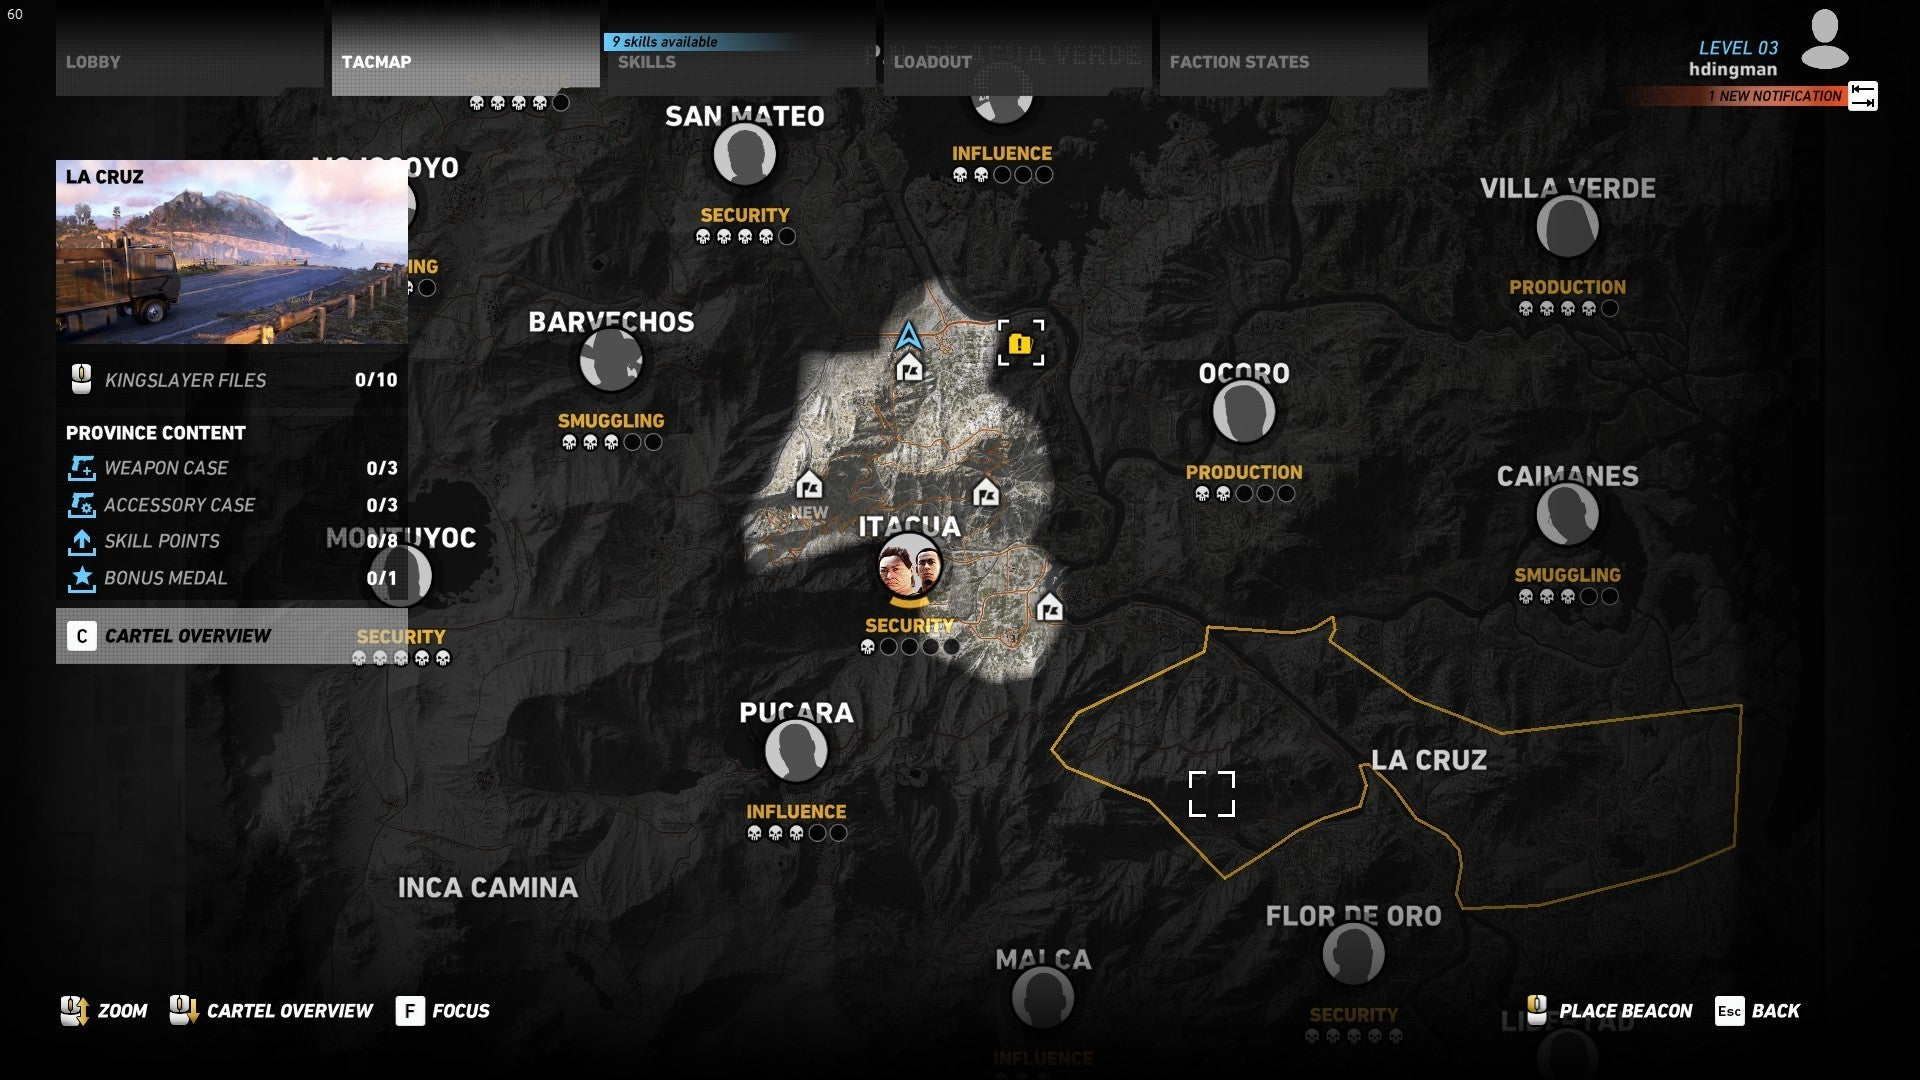 Ghost Recon: Wildlands (PC) impressions: A beautiful, buggy